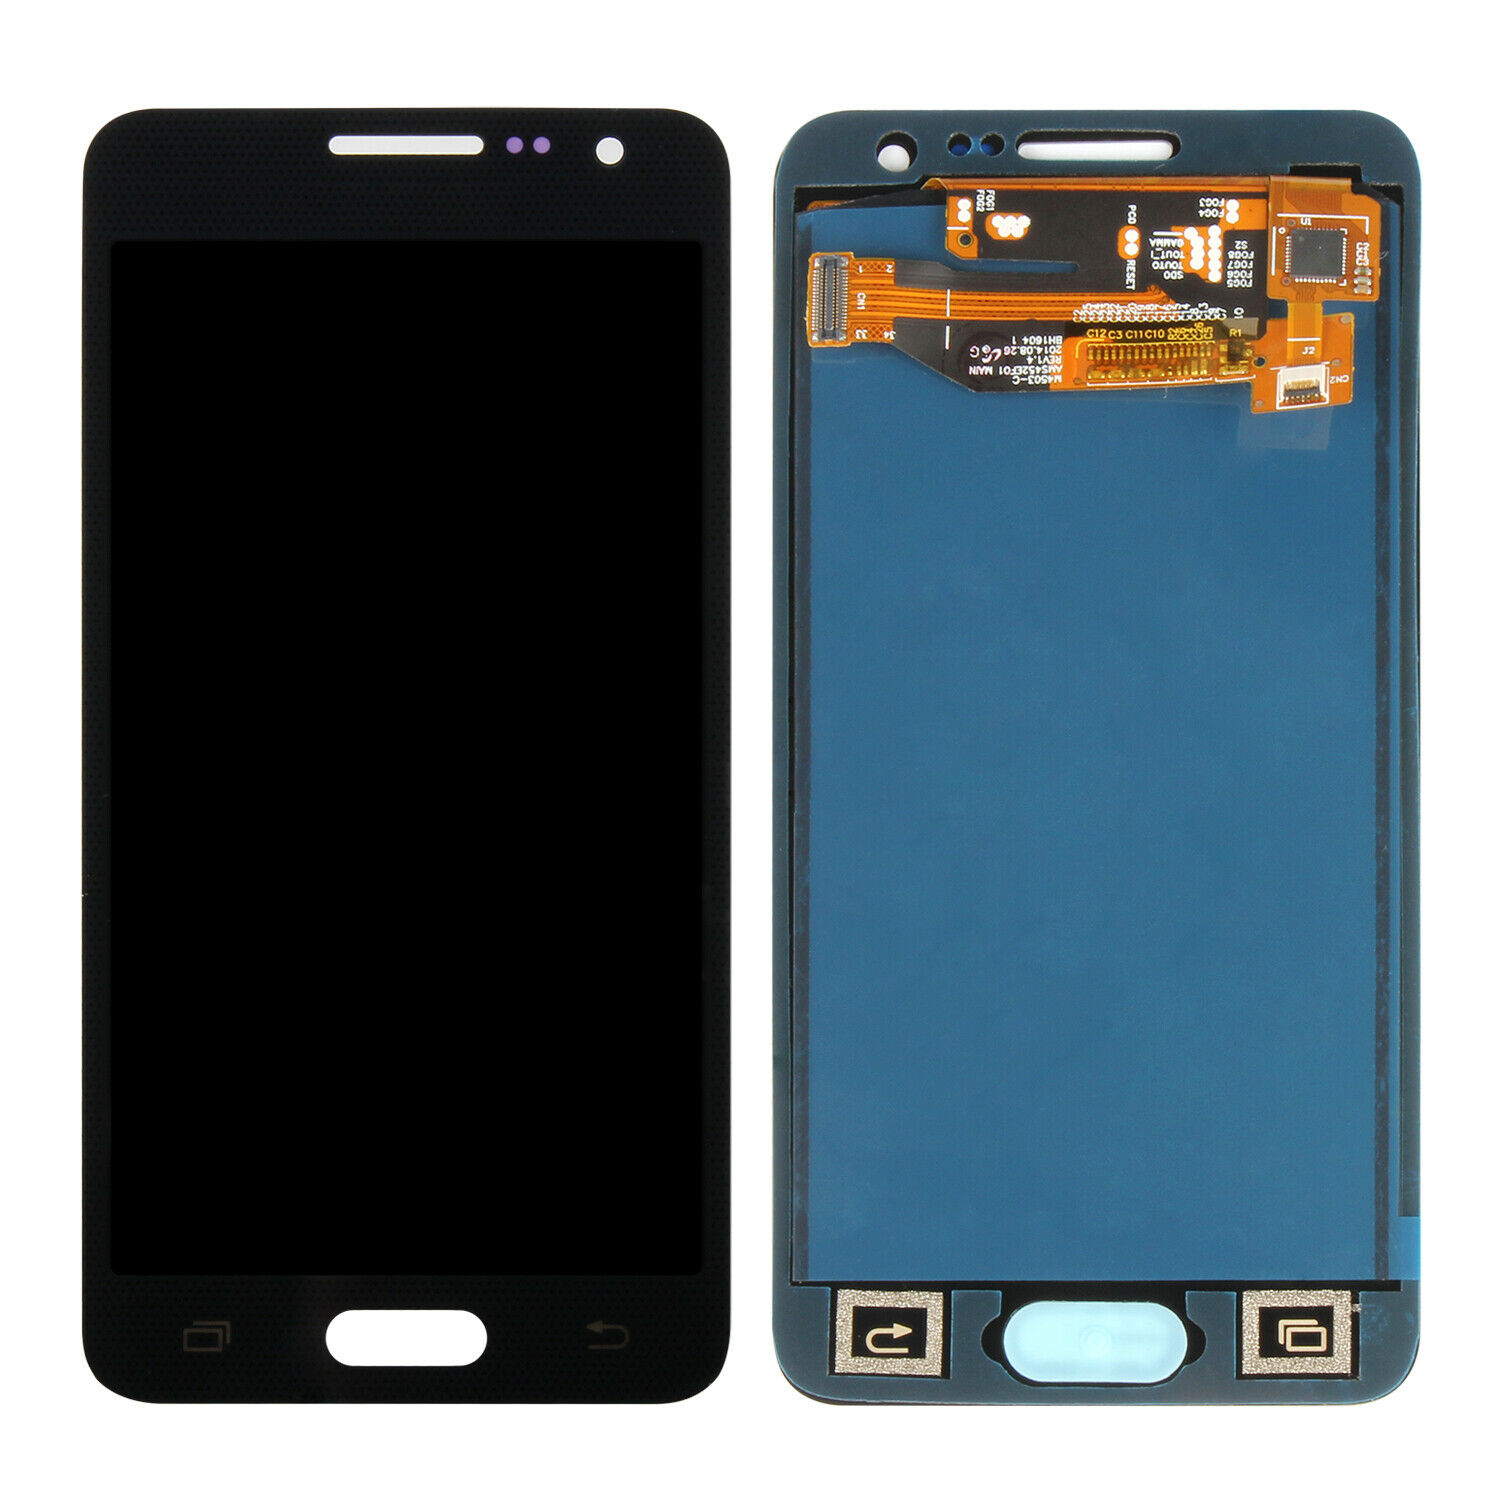 100% TFT Tested <font><b>LCD</b></font> For <font><b>Samsung</b></font> Galaxy A3 2015 <font><b>A300</b></font> A3000 A300F A300M <font><b>LCD</b></font> + Touch Screen Assembly Brightness Can Be Advertising image